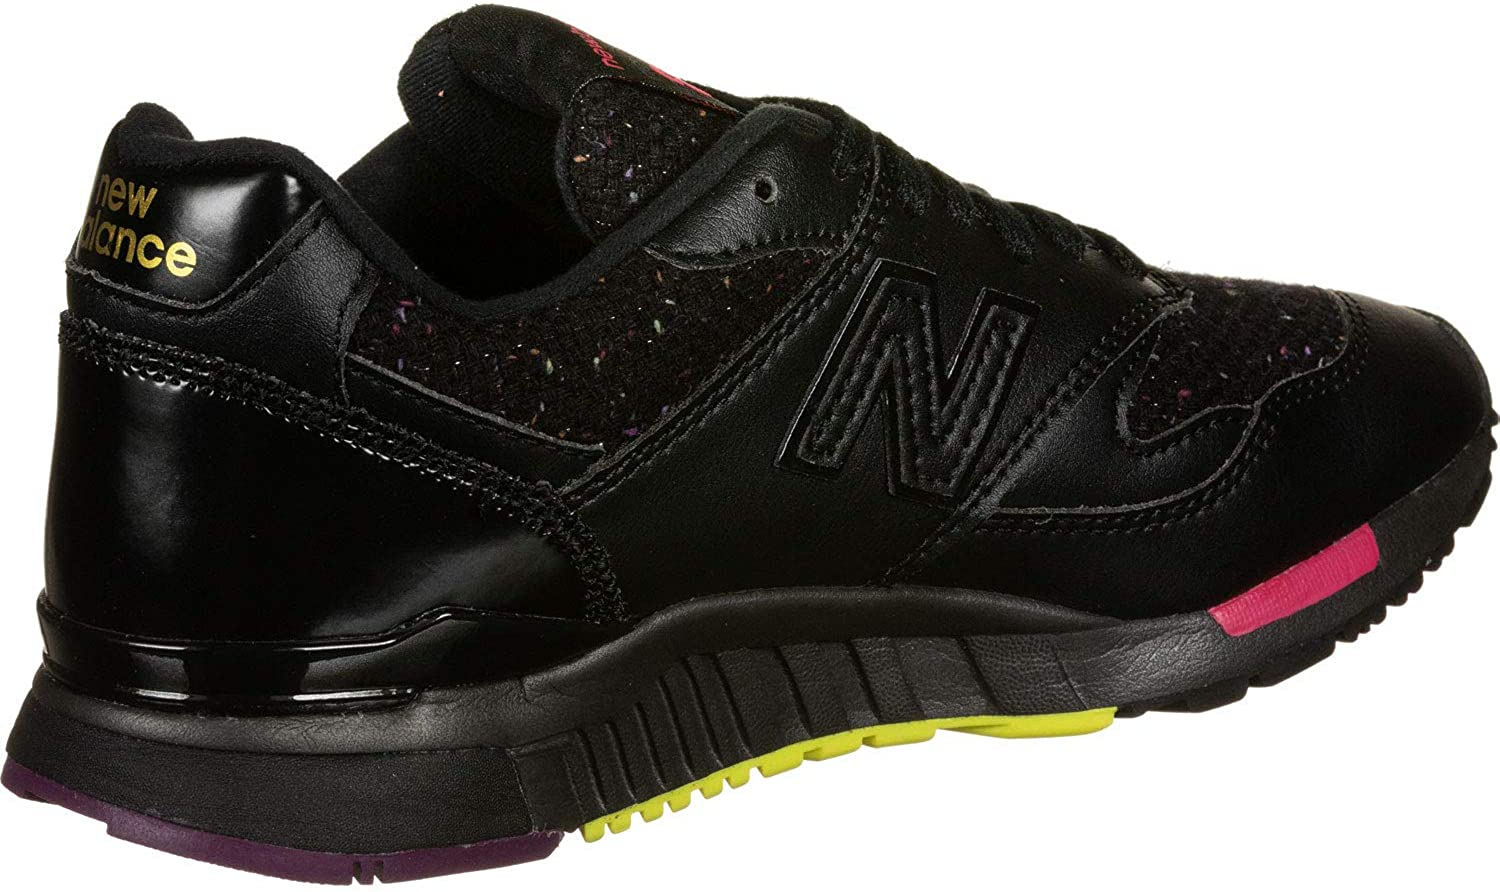 New Balance Women's 840 Trainers